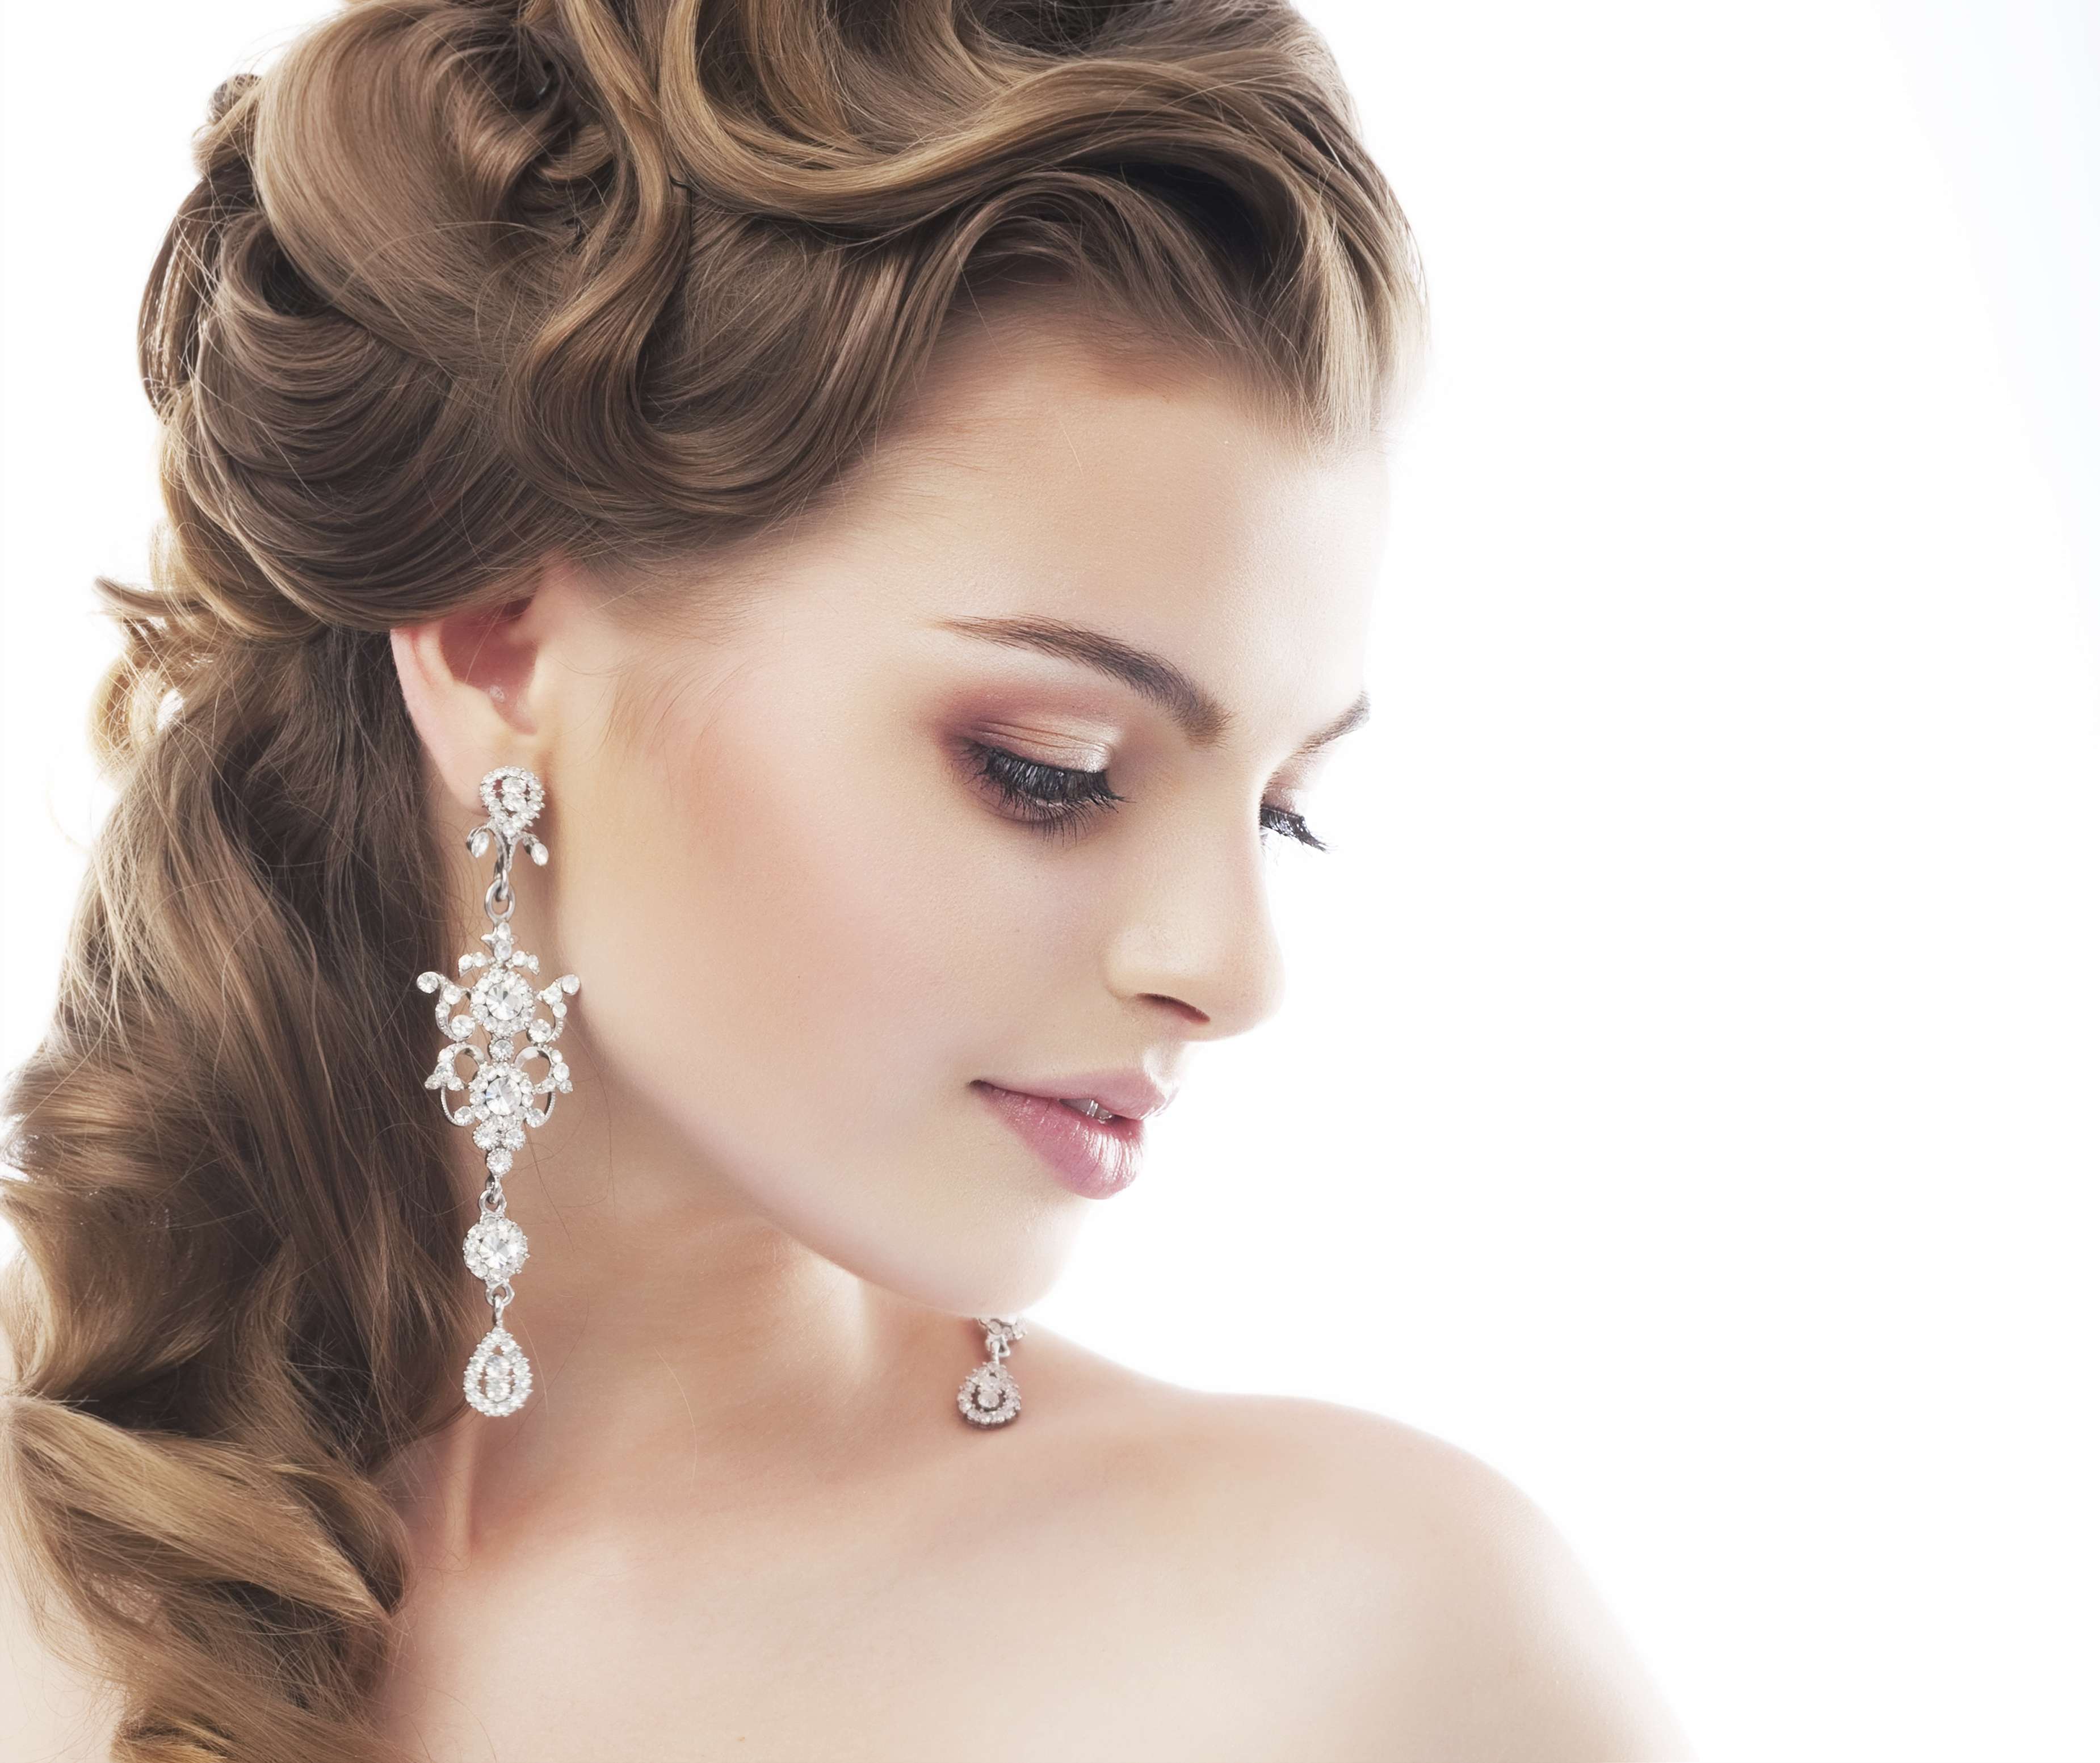 Choosing Wedding Hairstyle Articles Easy Weddings